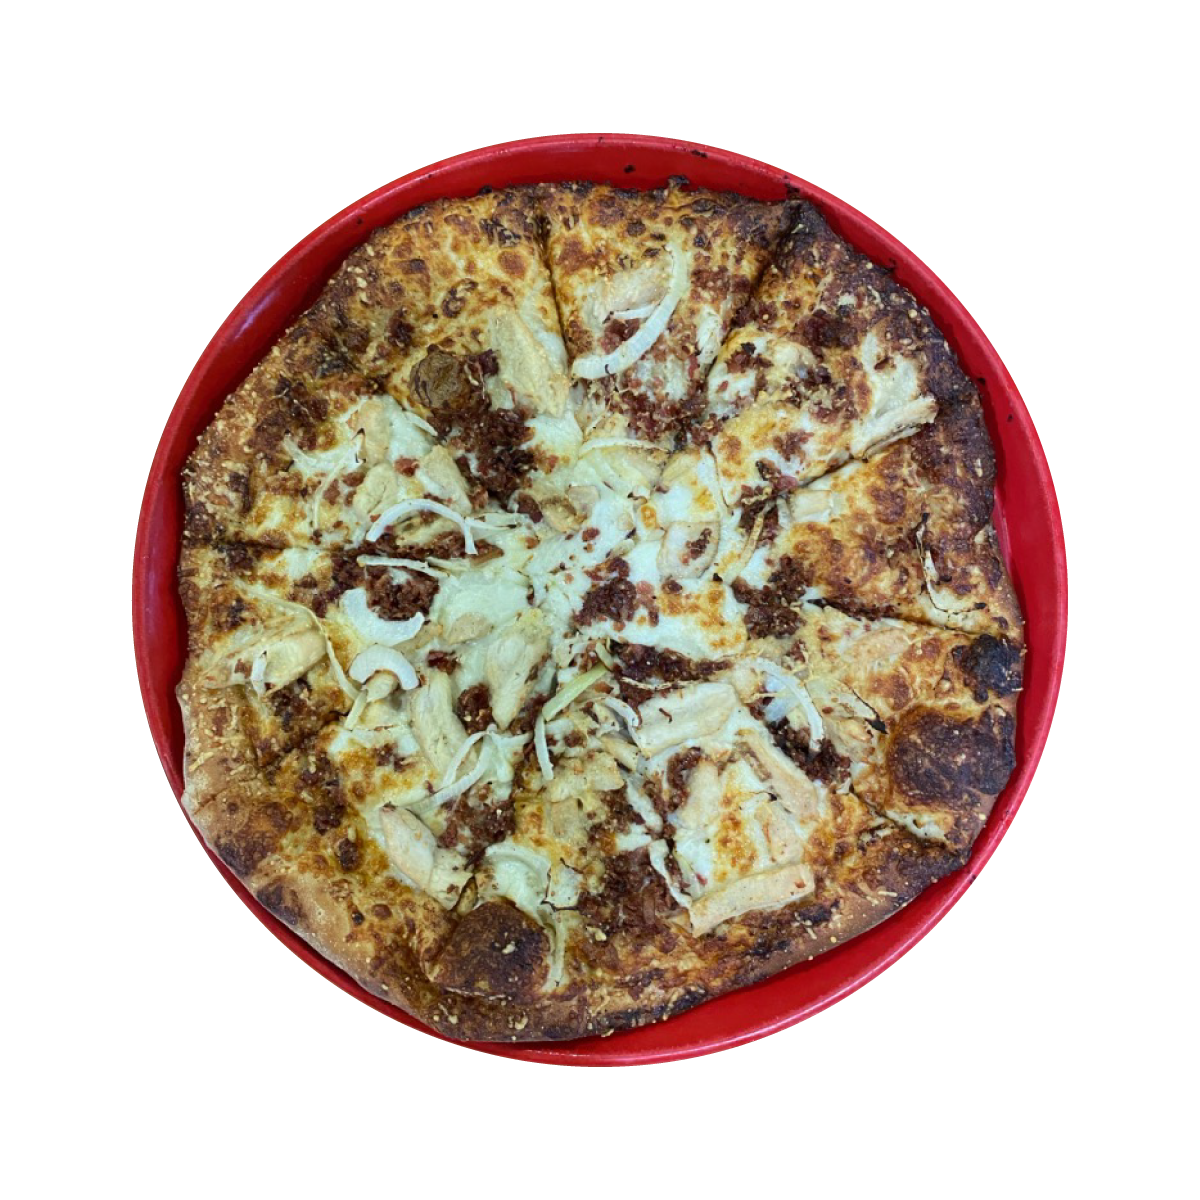 The Chicken Bake Pizza